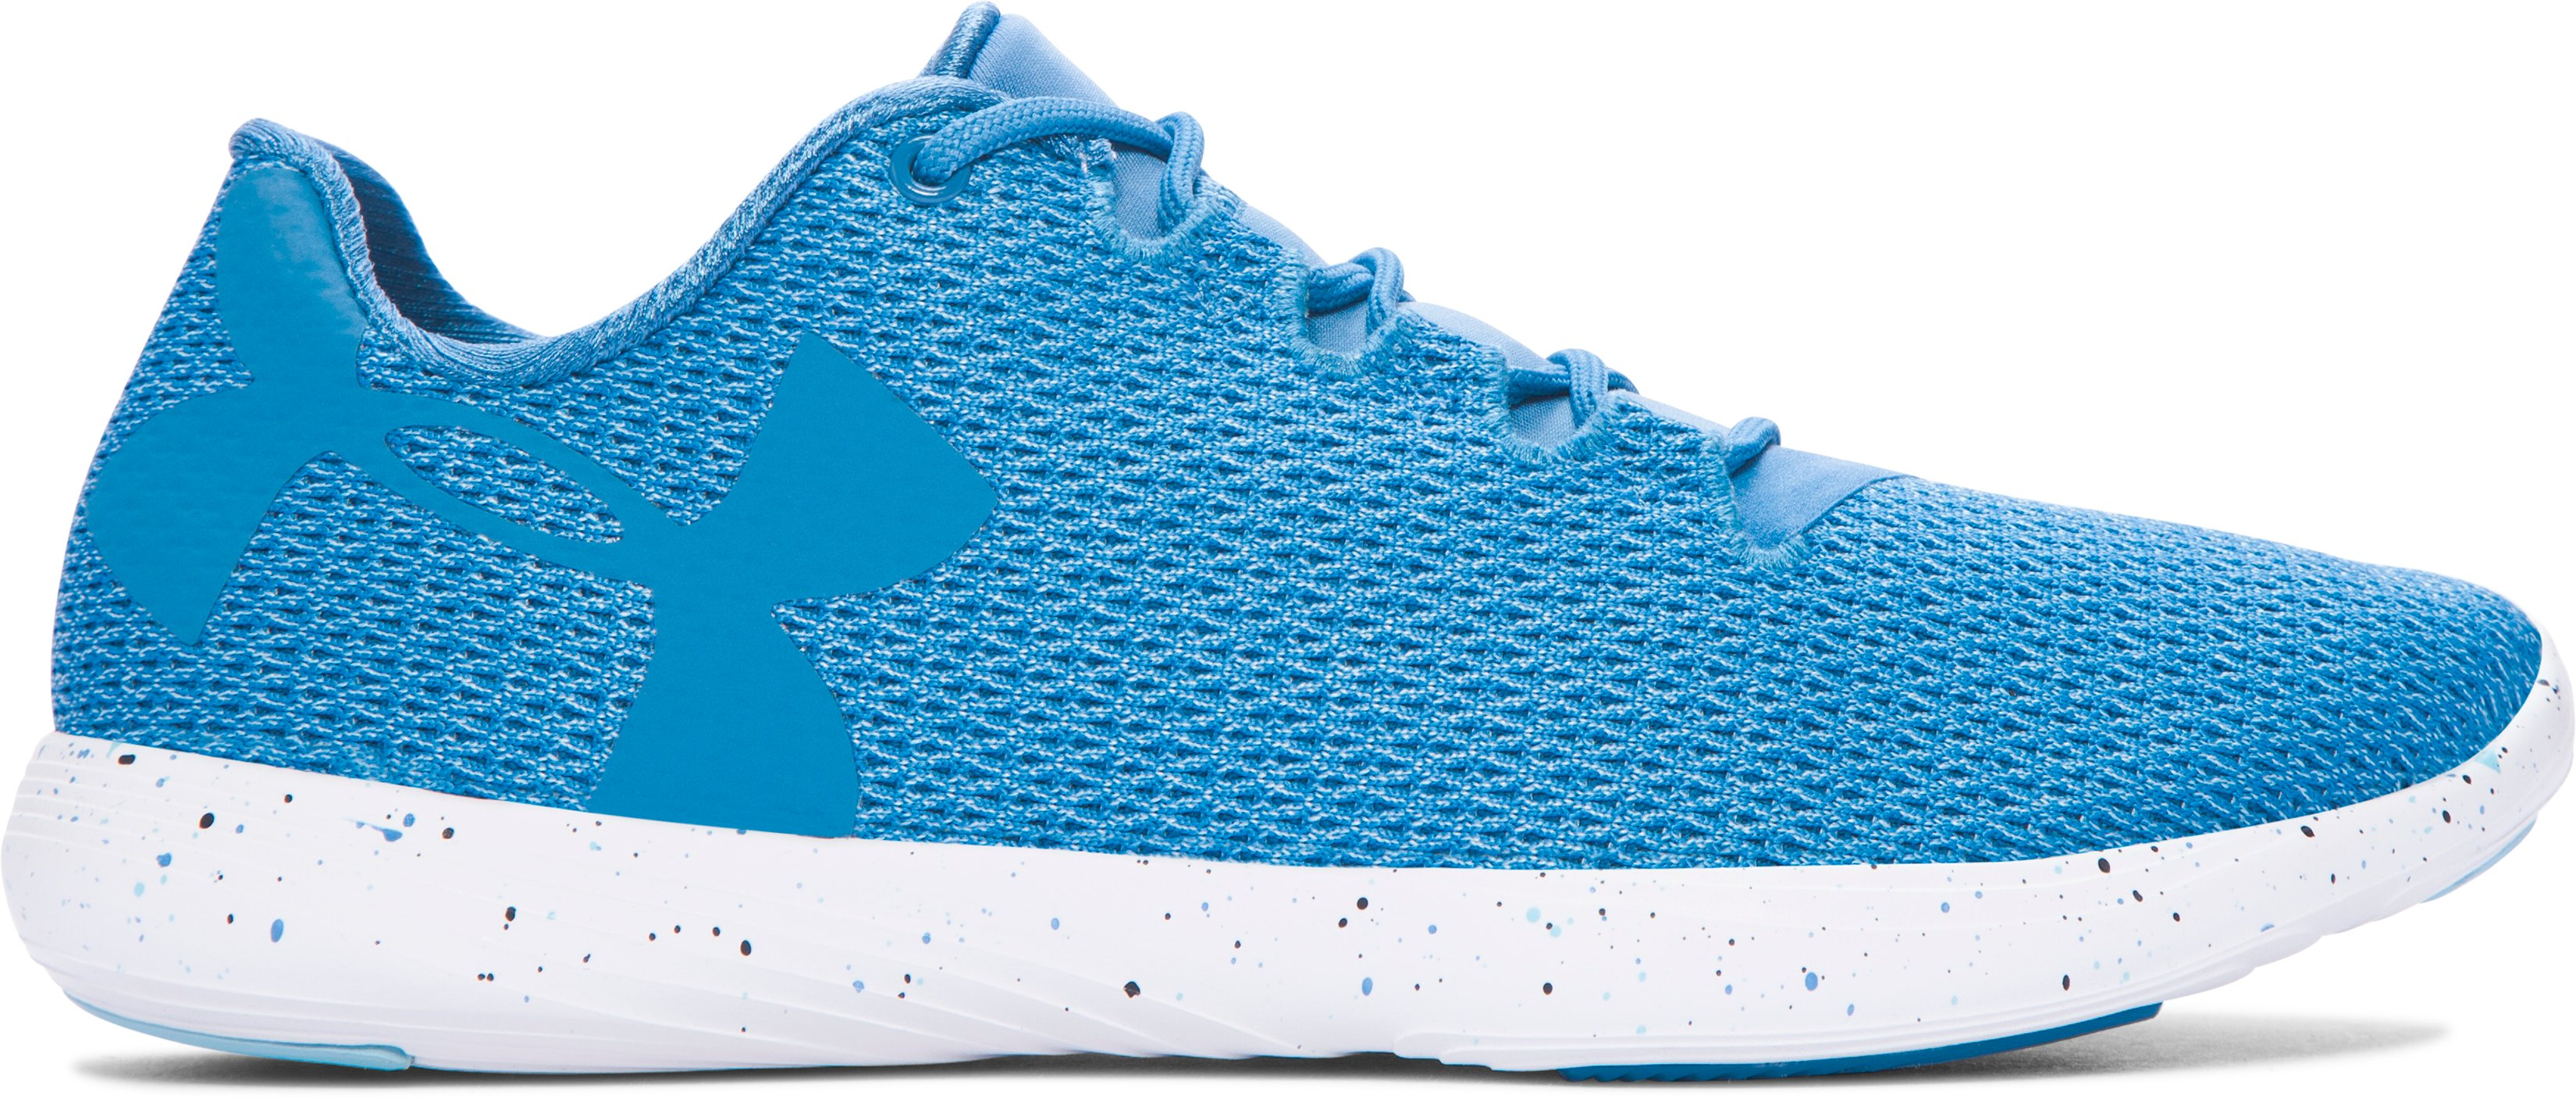 Women's UA Street Precision Low Speckle Shoes, CHICAGO BLUE,